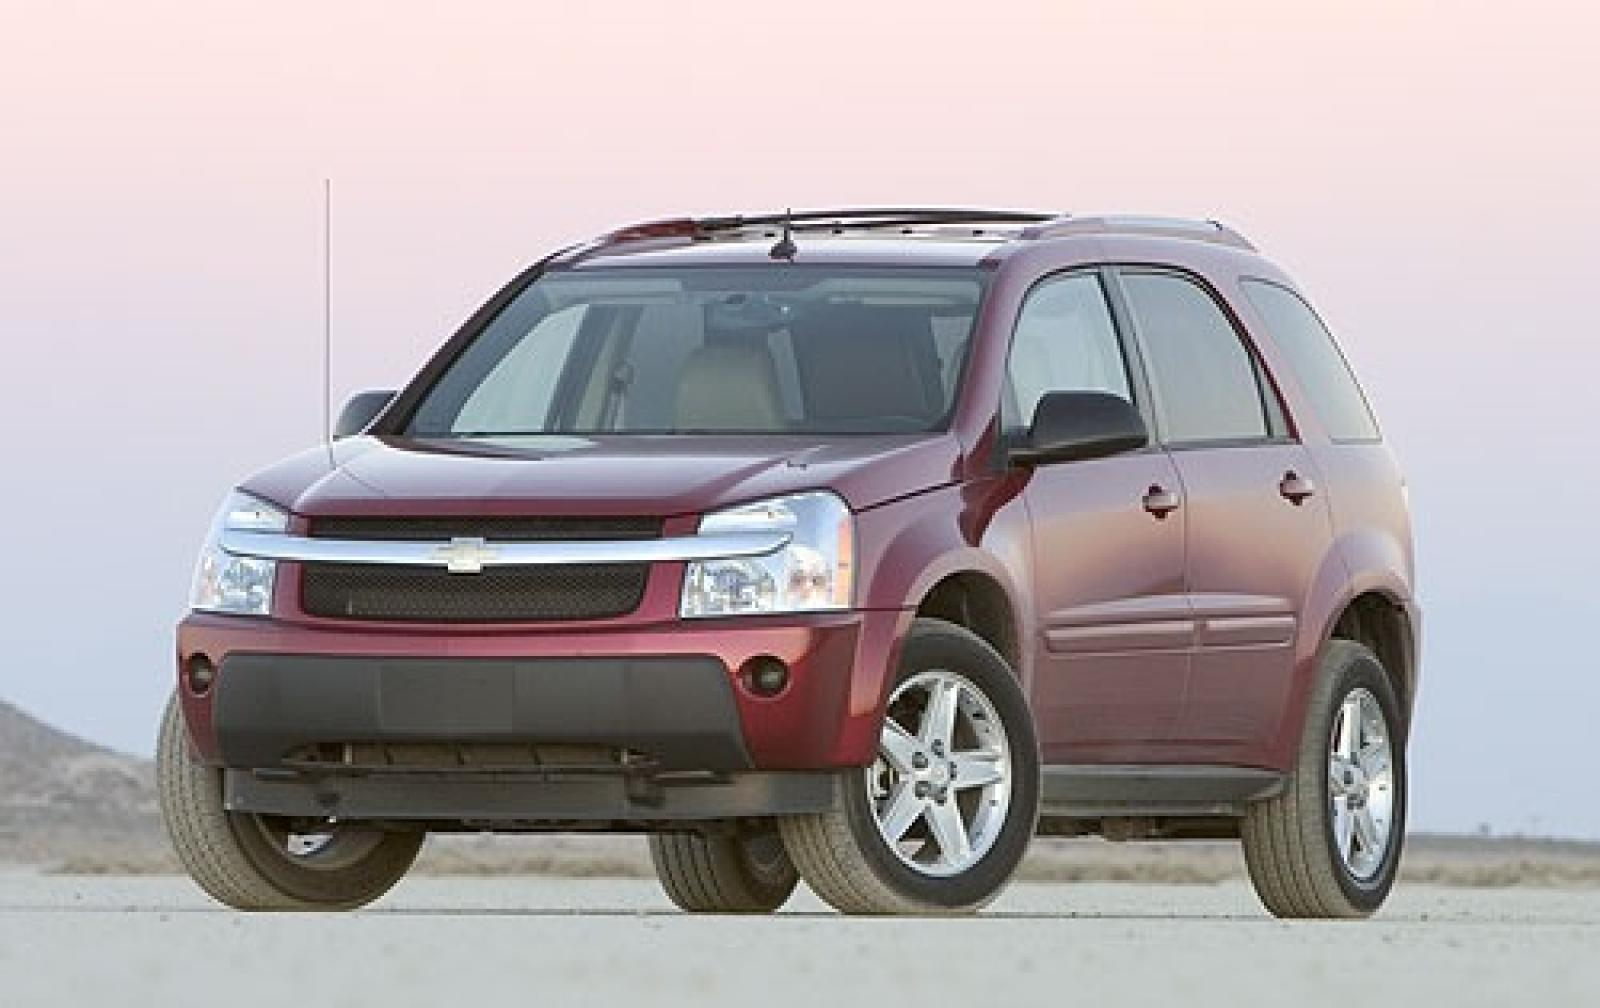 2006 chevrolet equinox information and photos zombiedrive. Black Bedroom Furniture Sets. Home Design Ideas